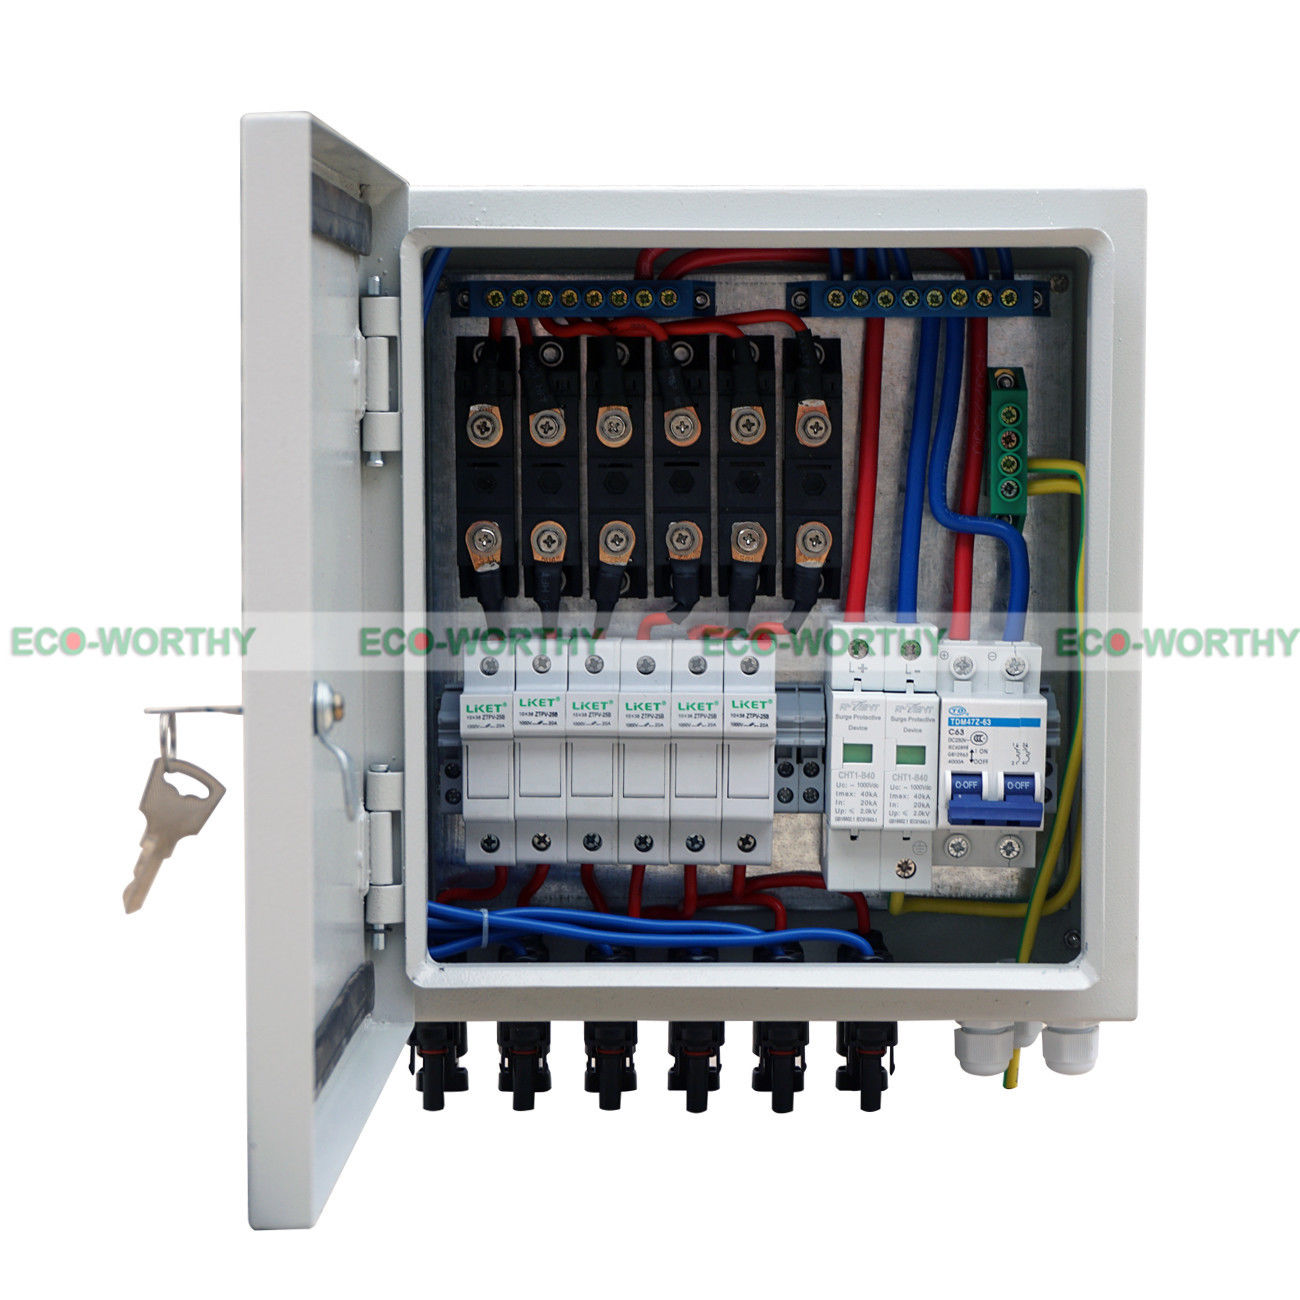 Buy 400w 4x 100w 12v Solar Panel Power 45a Pwm Charge Controller Circuit For Home System Generators From Reliable Generate